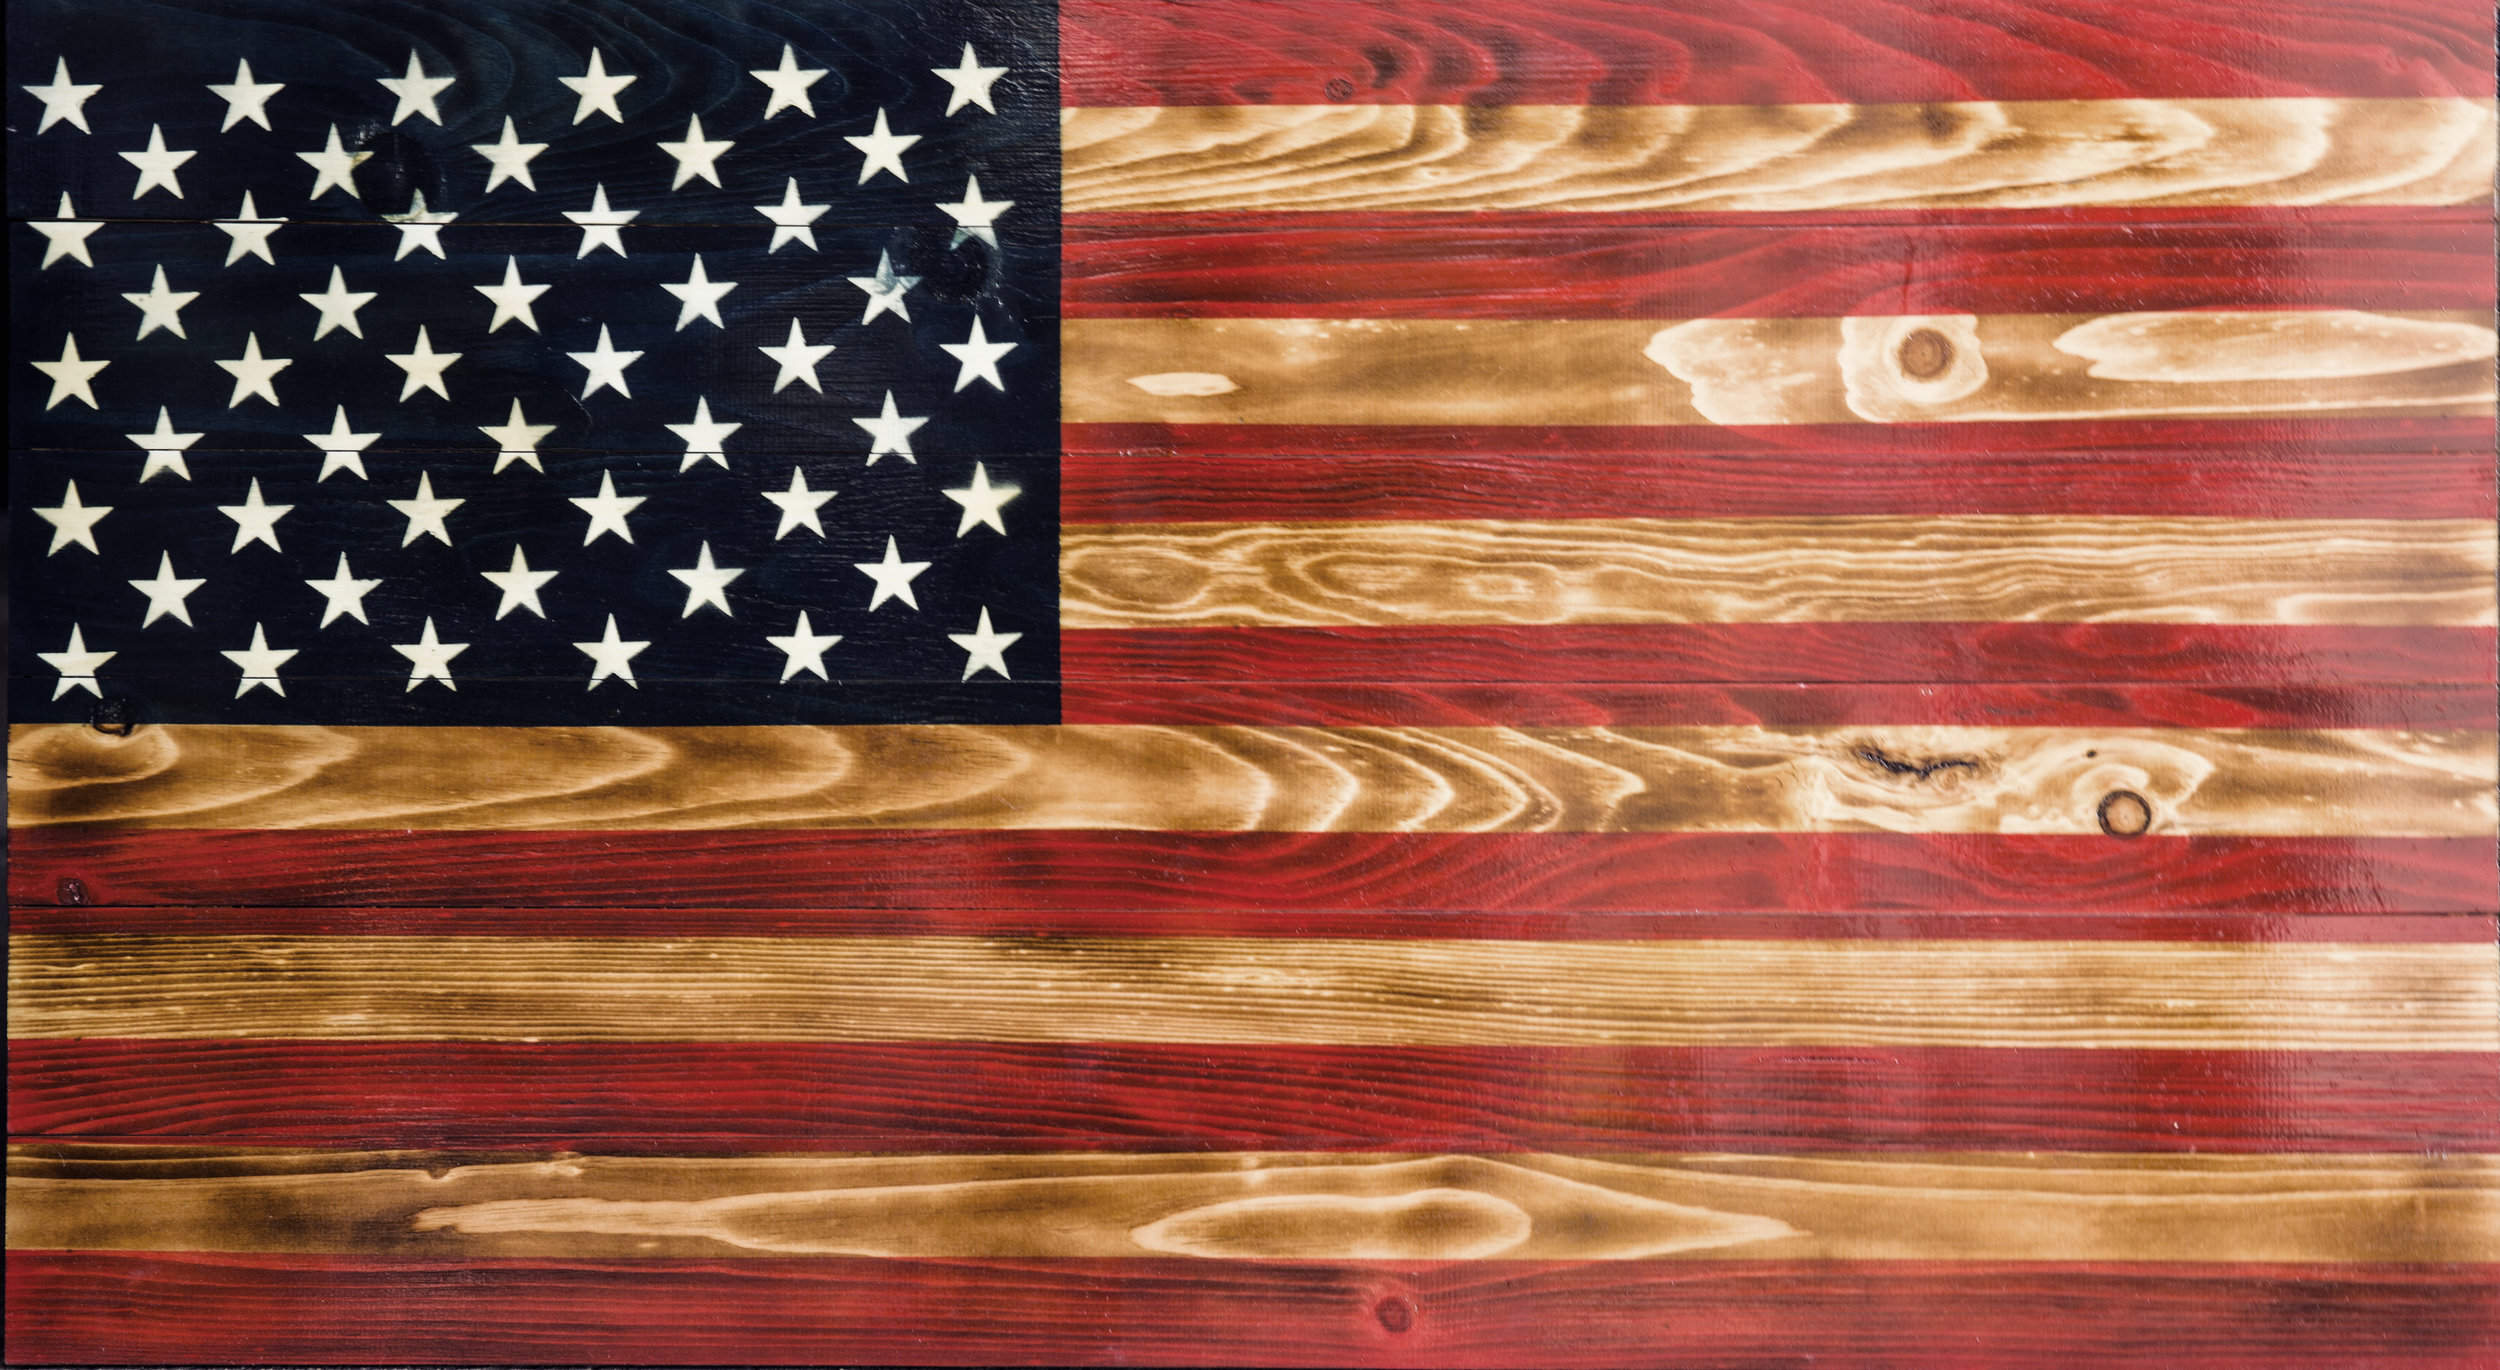 OLD GLORY - Honoring America with Wood Designs